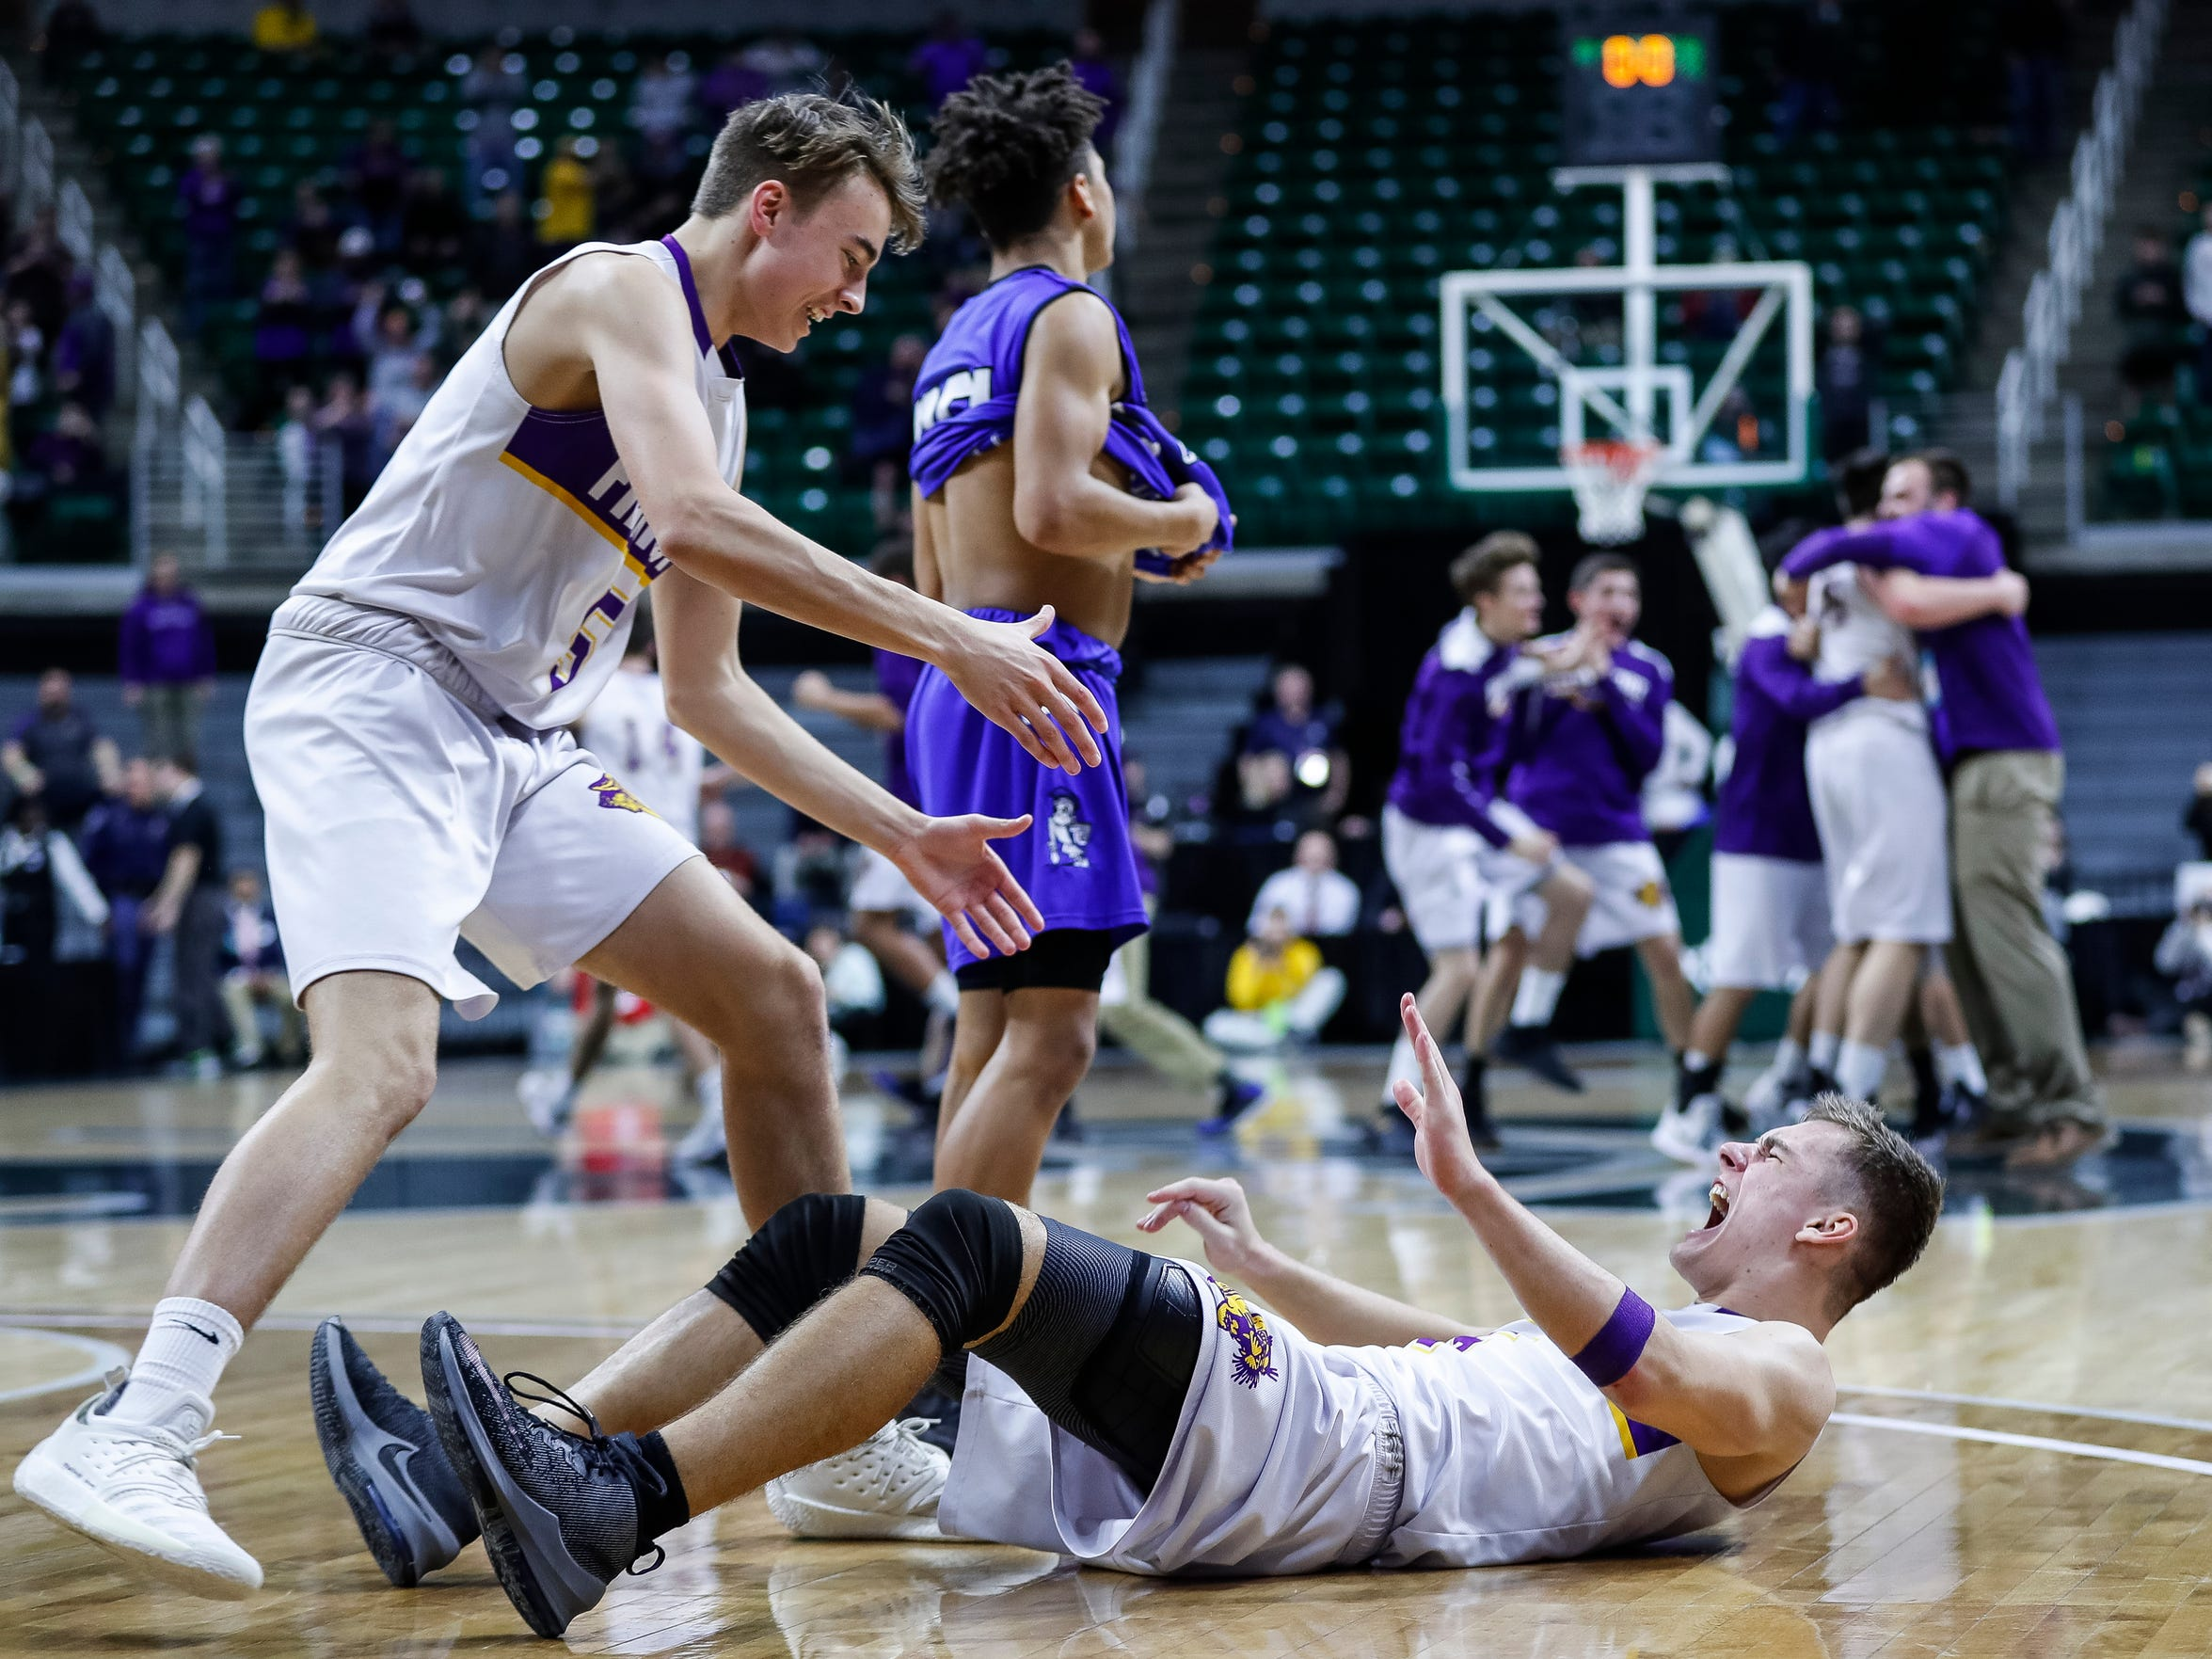 Frankfort's Luke Hammon (5) picks up his teammate Conner Smith (15) from the floor as they celebrate 44-43 win over Wyoming Tri-unity Christian during the second half of MHSAA Division 4 semifinal at the Breslin Center in East Lansing, Thursday, March 14, 2019.